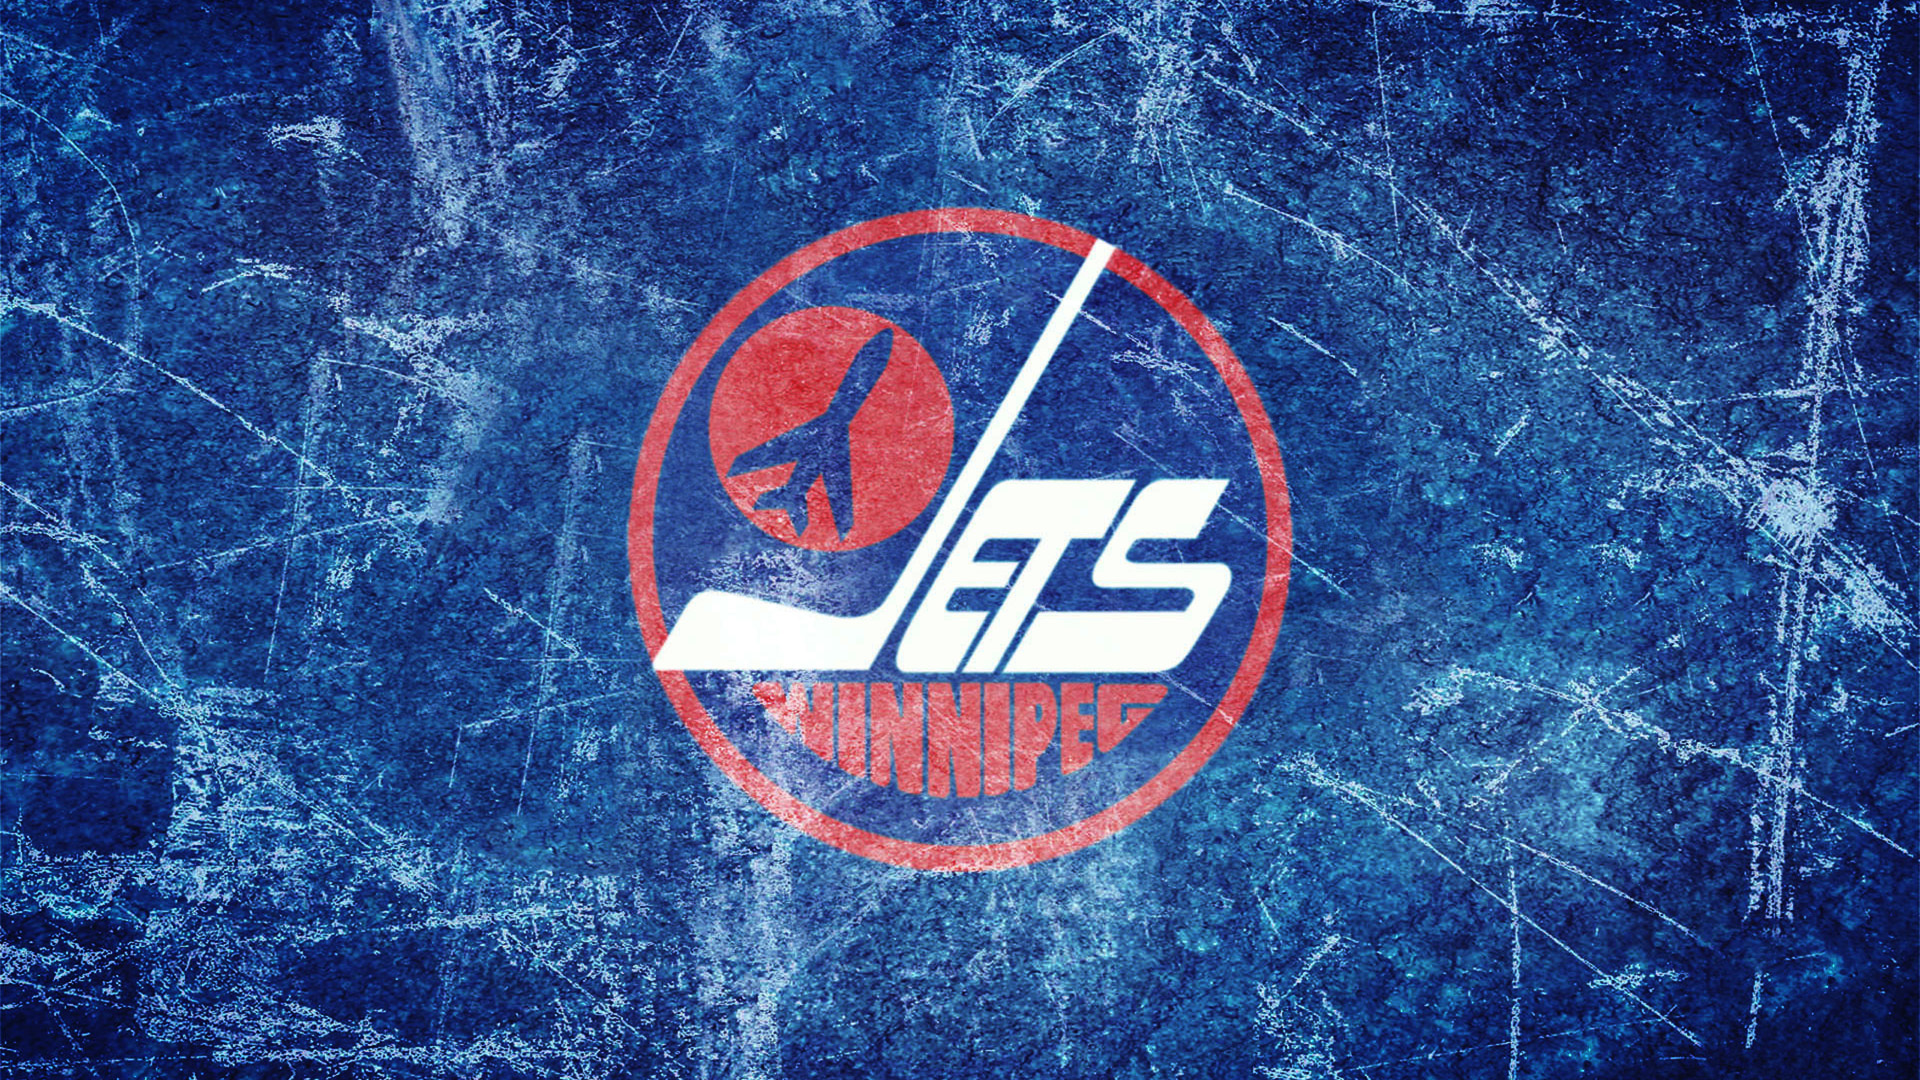 Winnipeg Jets wallpaper   561487 1920x1080